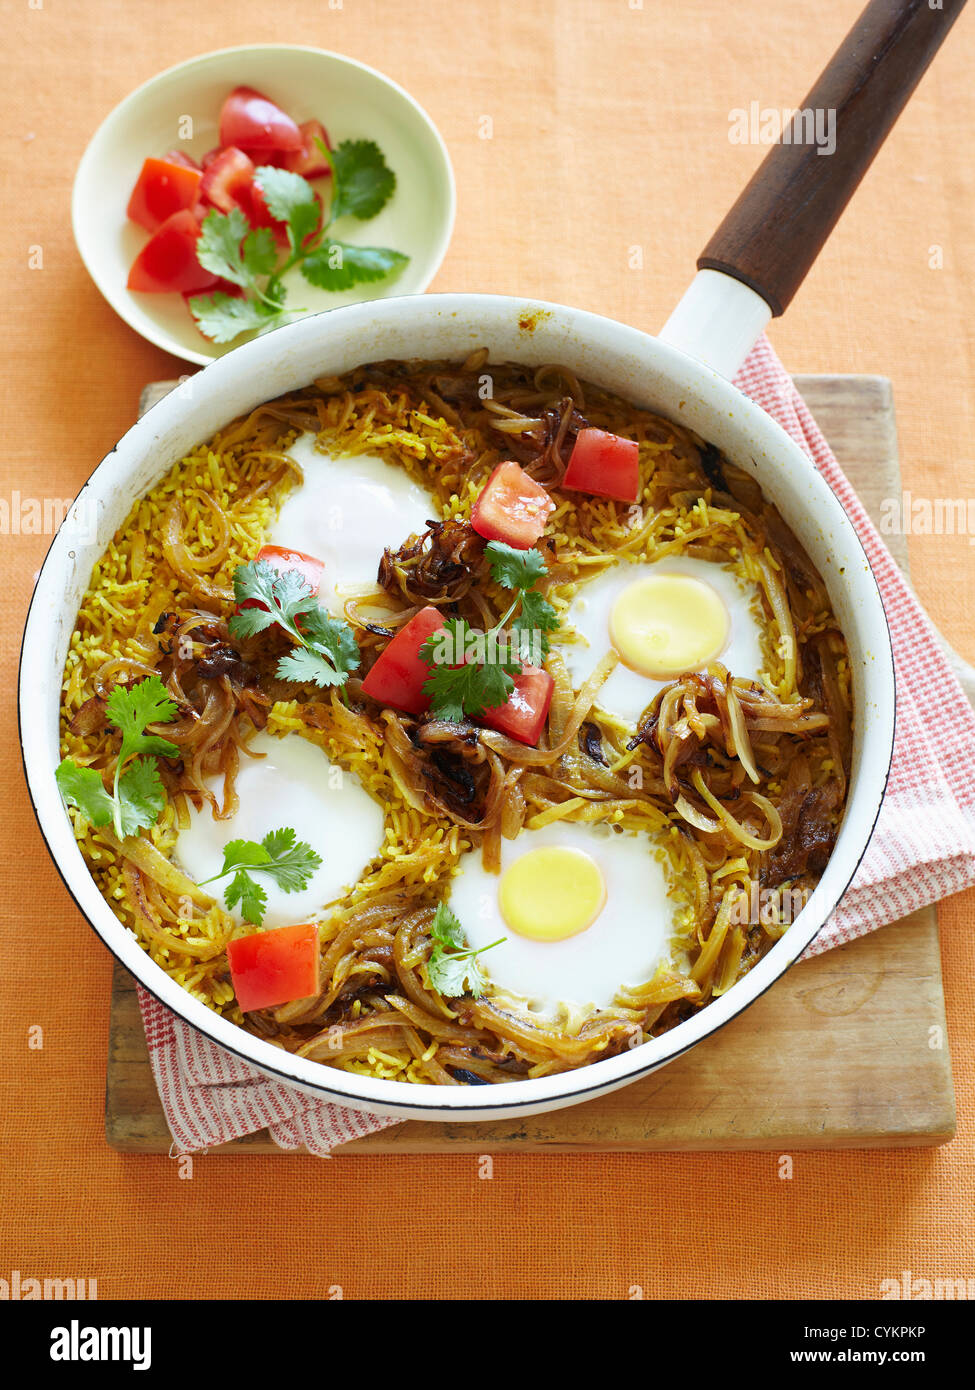 Pan of eggs rice and tomato - Stock Image